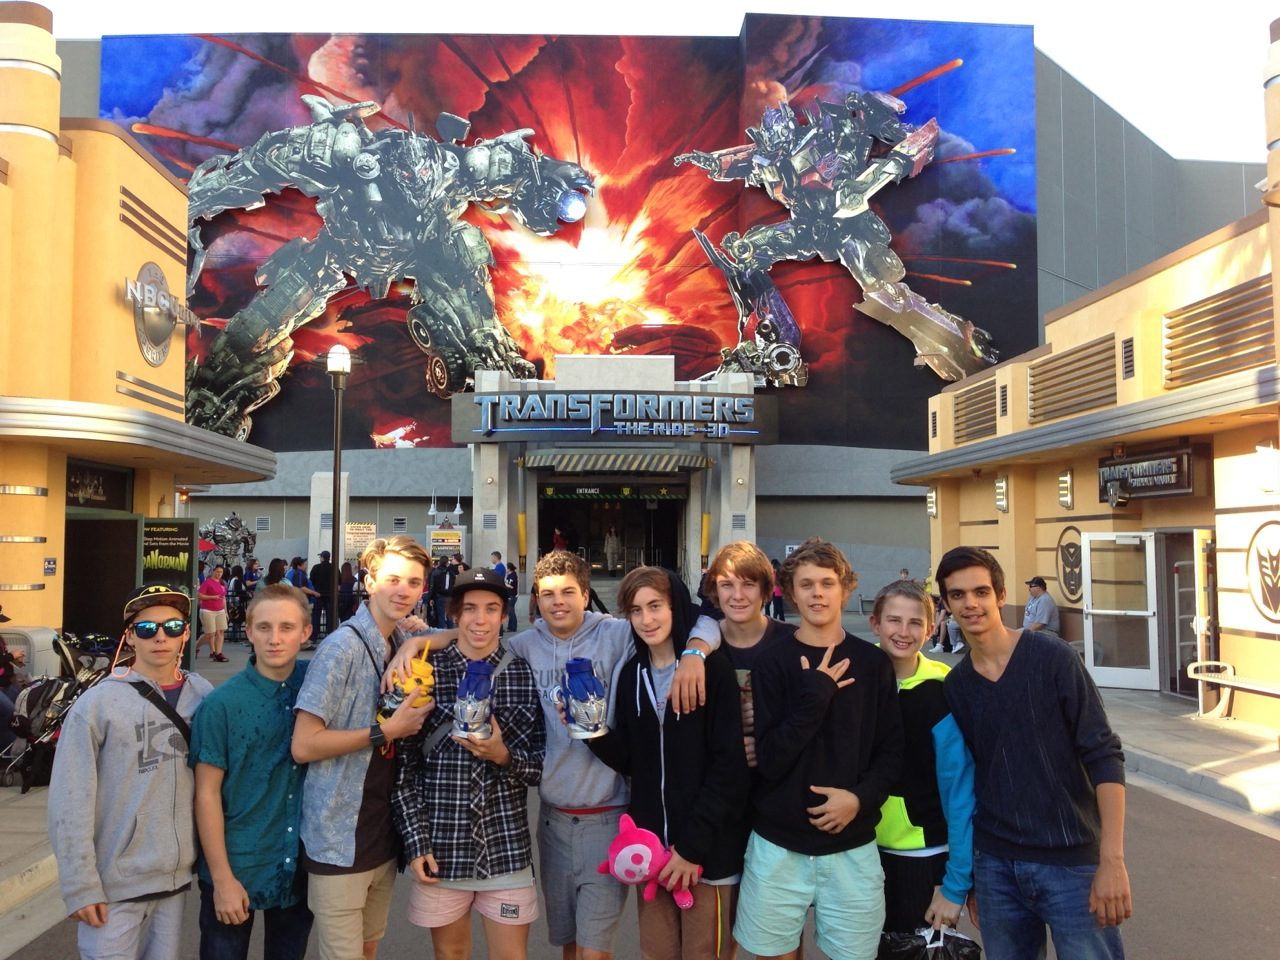 The Transformers ride was awesome...